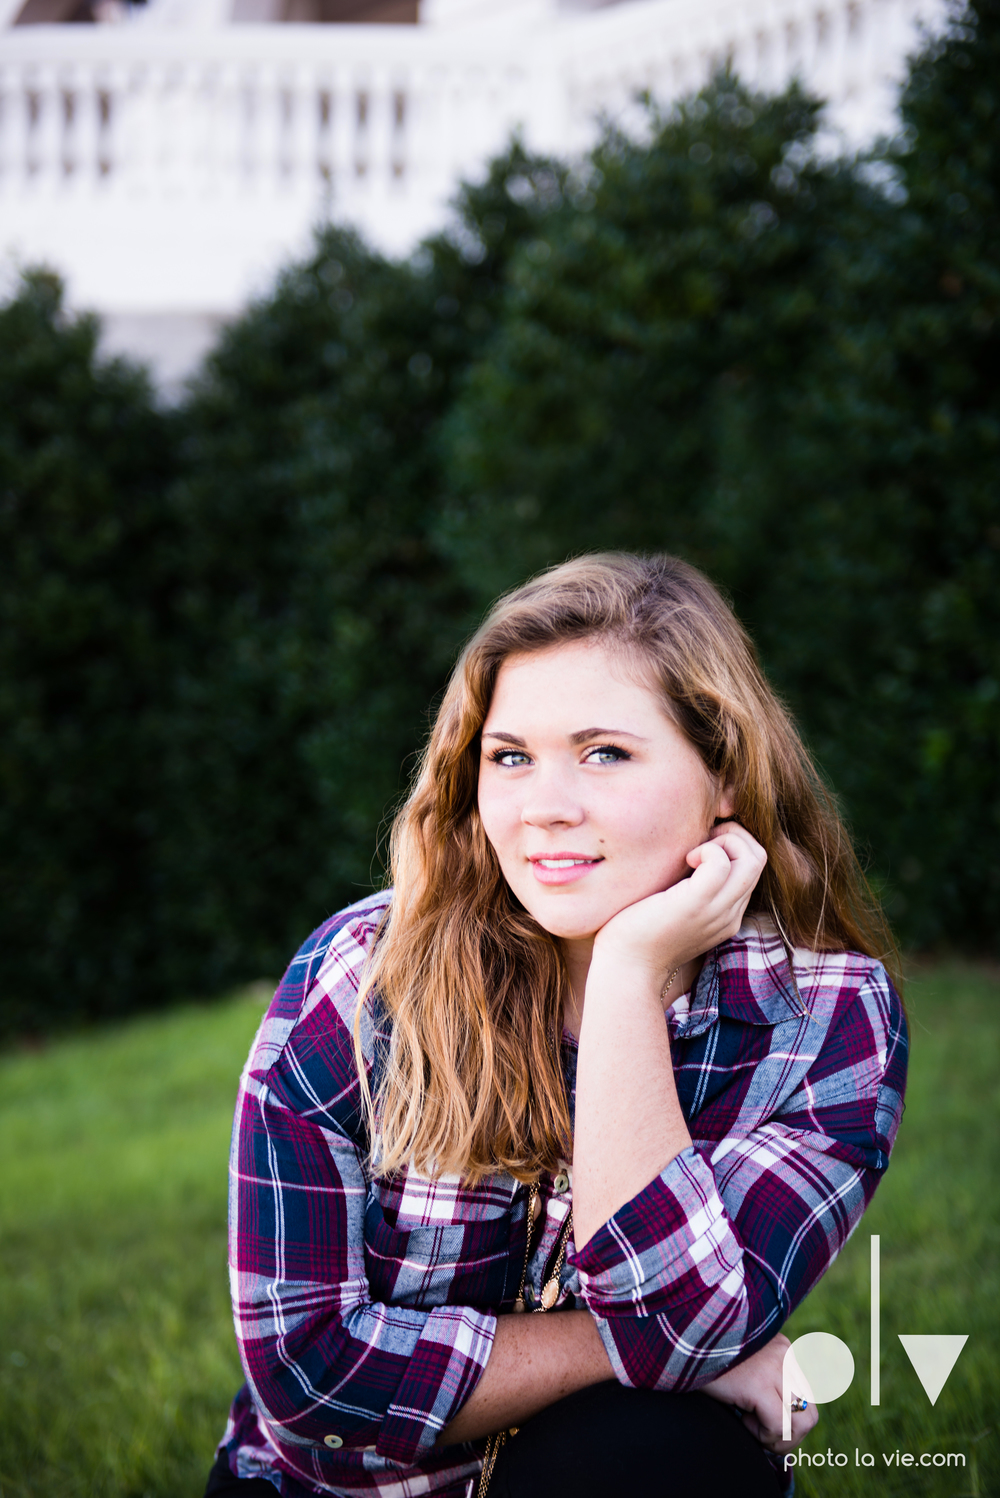 Abi senior session photo DBU dallas dfw texas girl high school campus fall winter plaid dress purple guitar Sarah Whittaker Photo La Vie-9.JPG